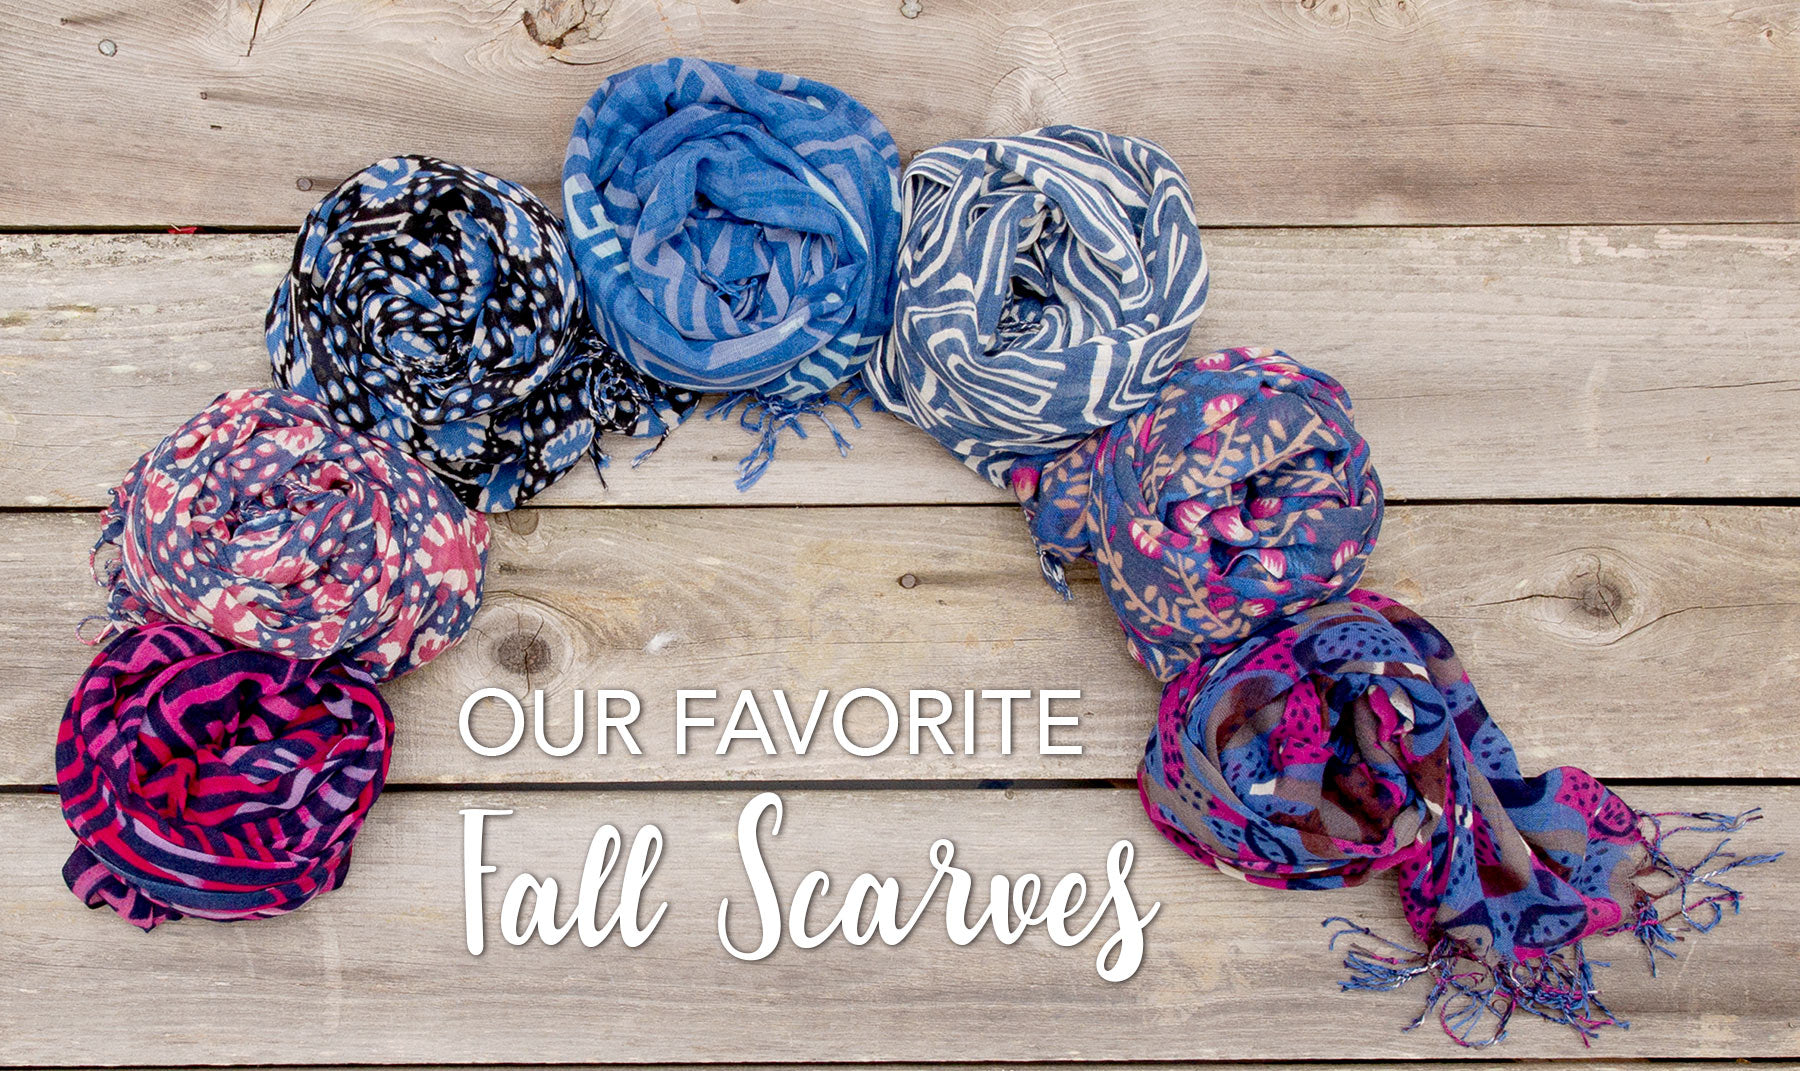 Flat lay on wood panels of coiled, colorful, fall scarves in blues and berries